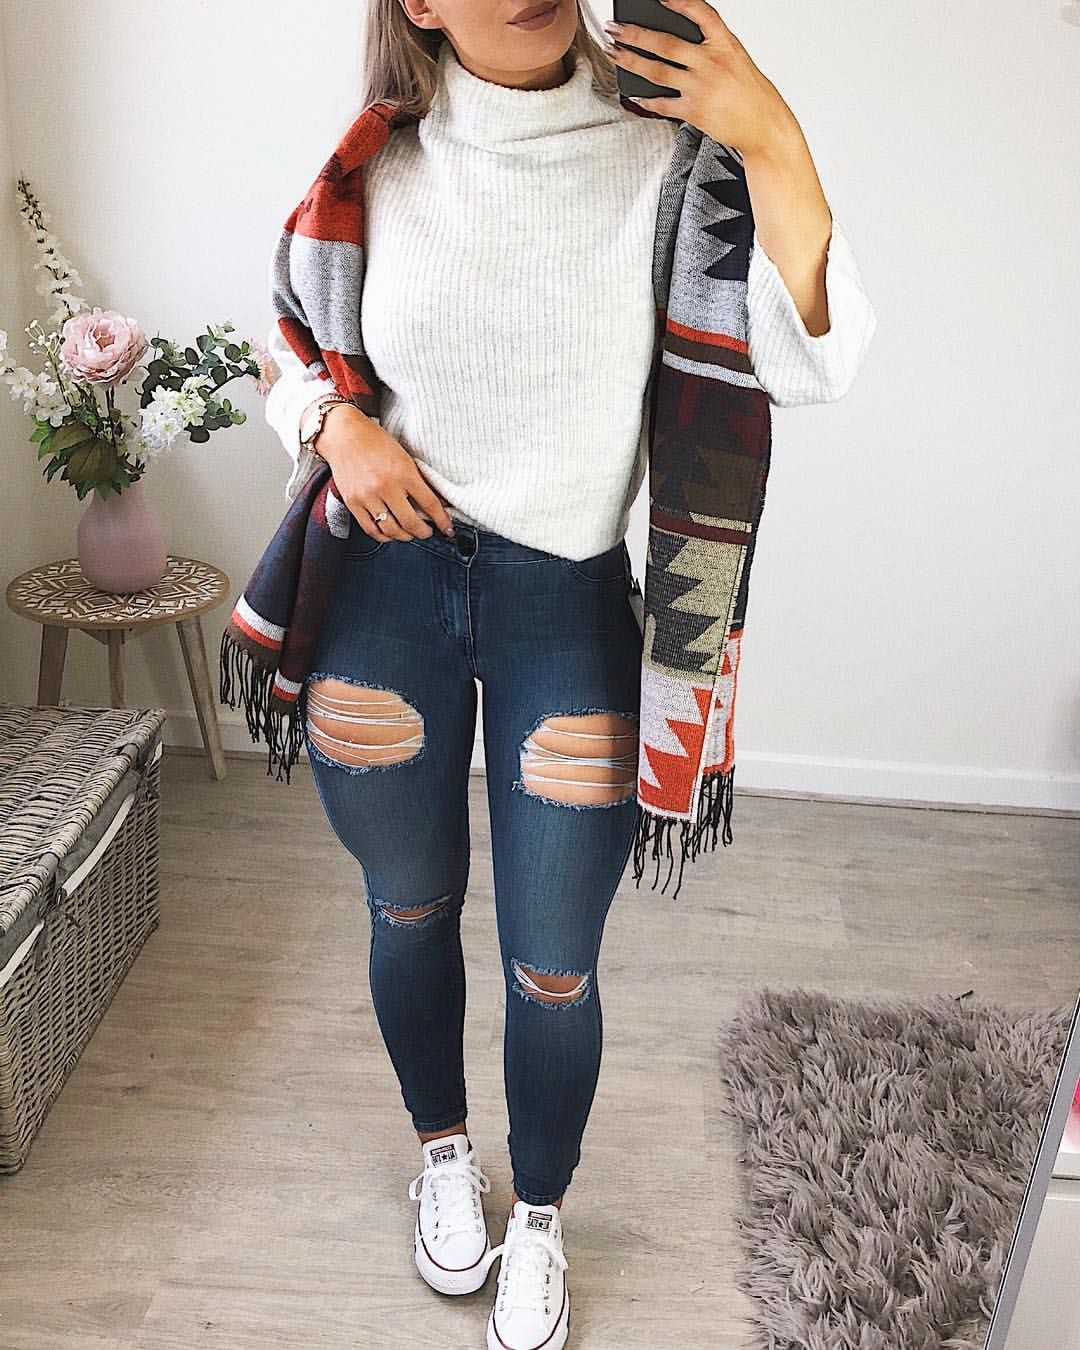 2ca6265a265099 🍂 Fall outfits are the best 🍂 👚 Jumper -  asos 🧣Scarf -  asos ...